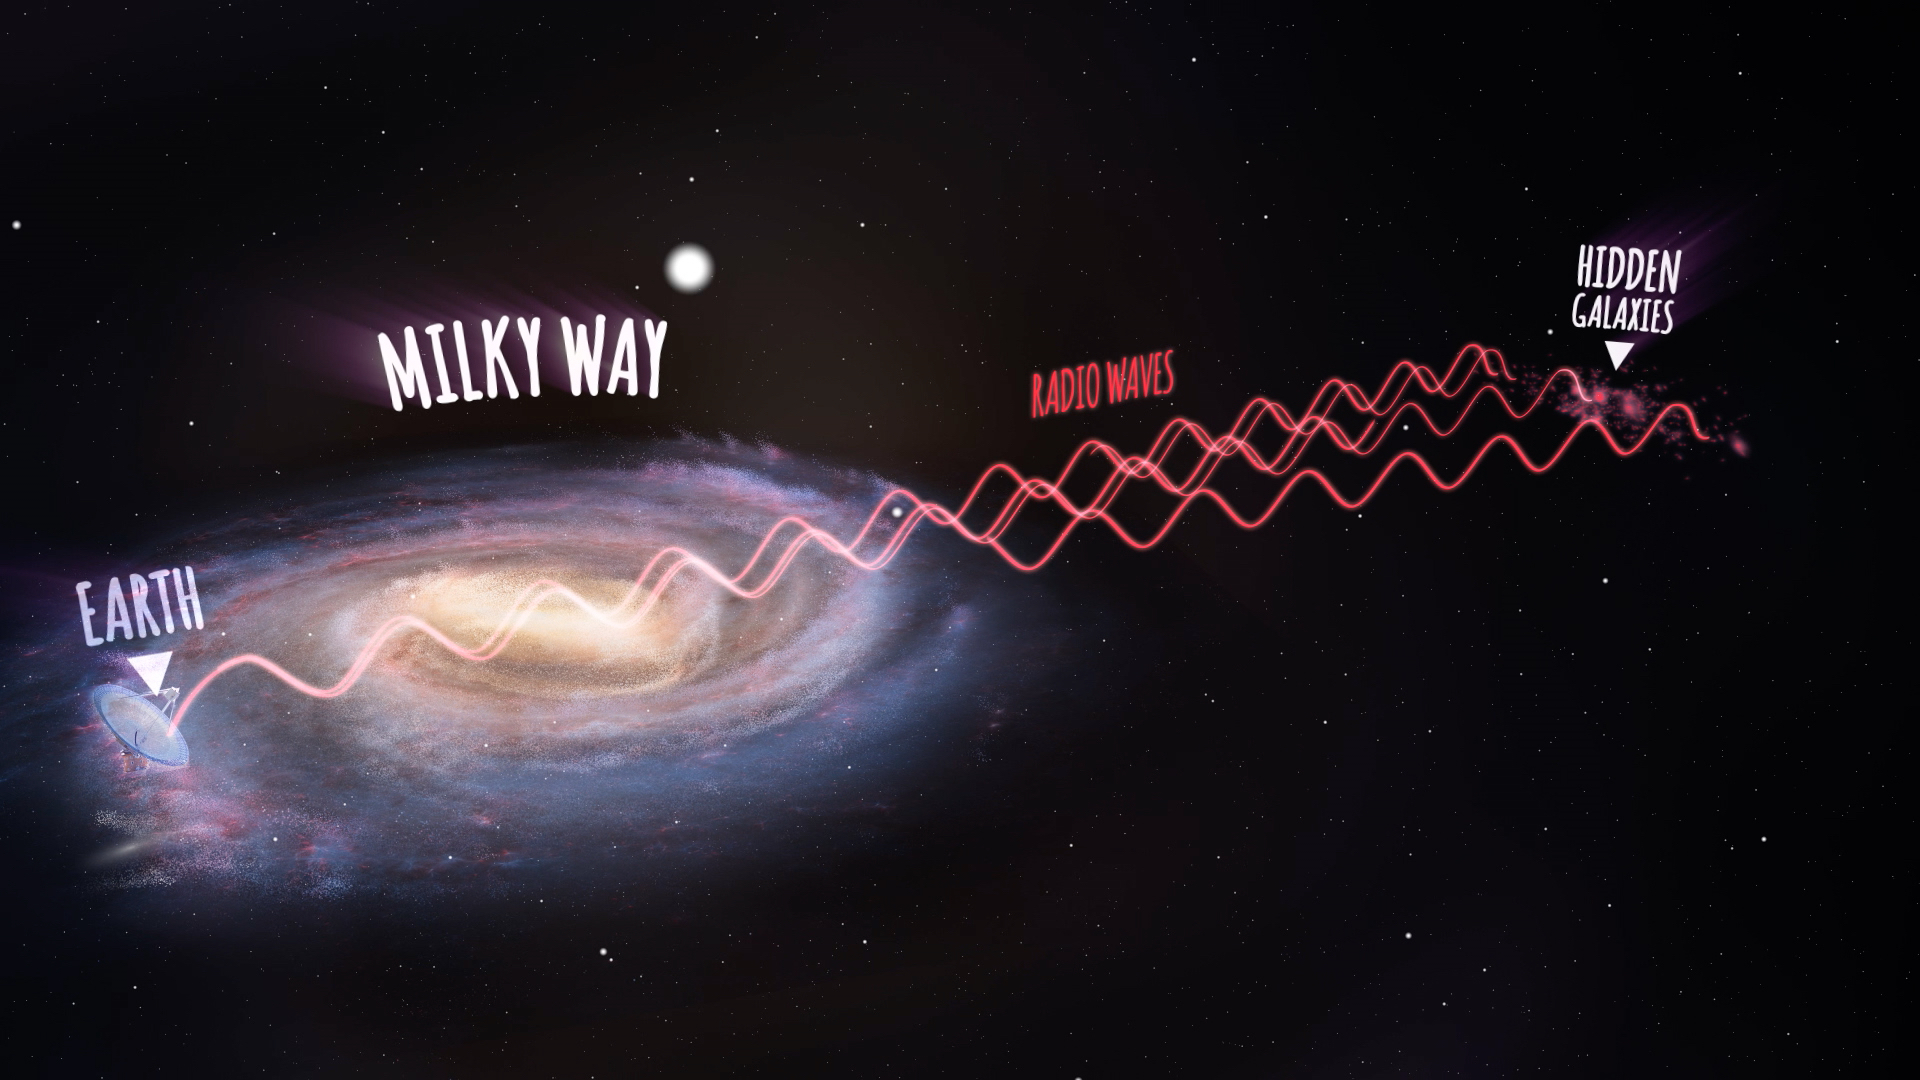 Scientists discover hidden galaxies behind the Milky Way ...